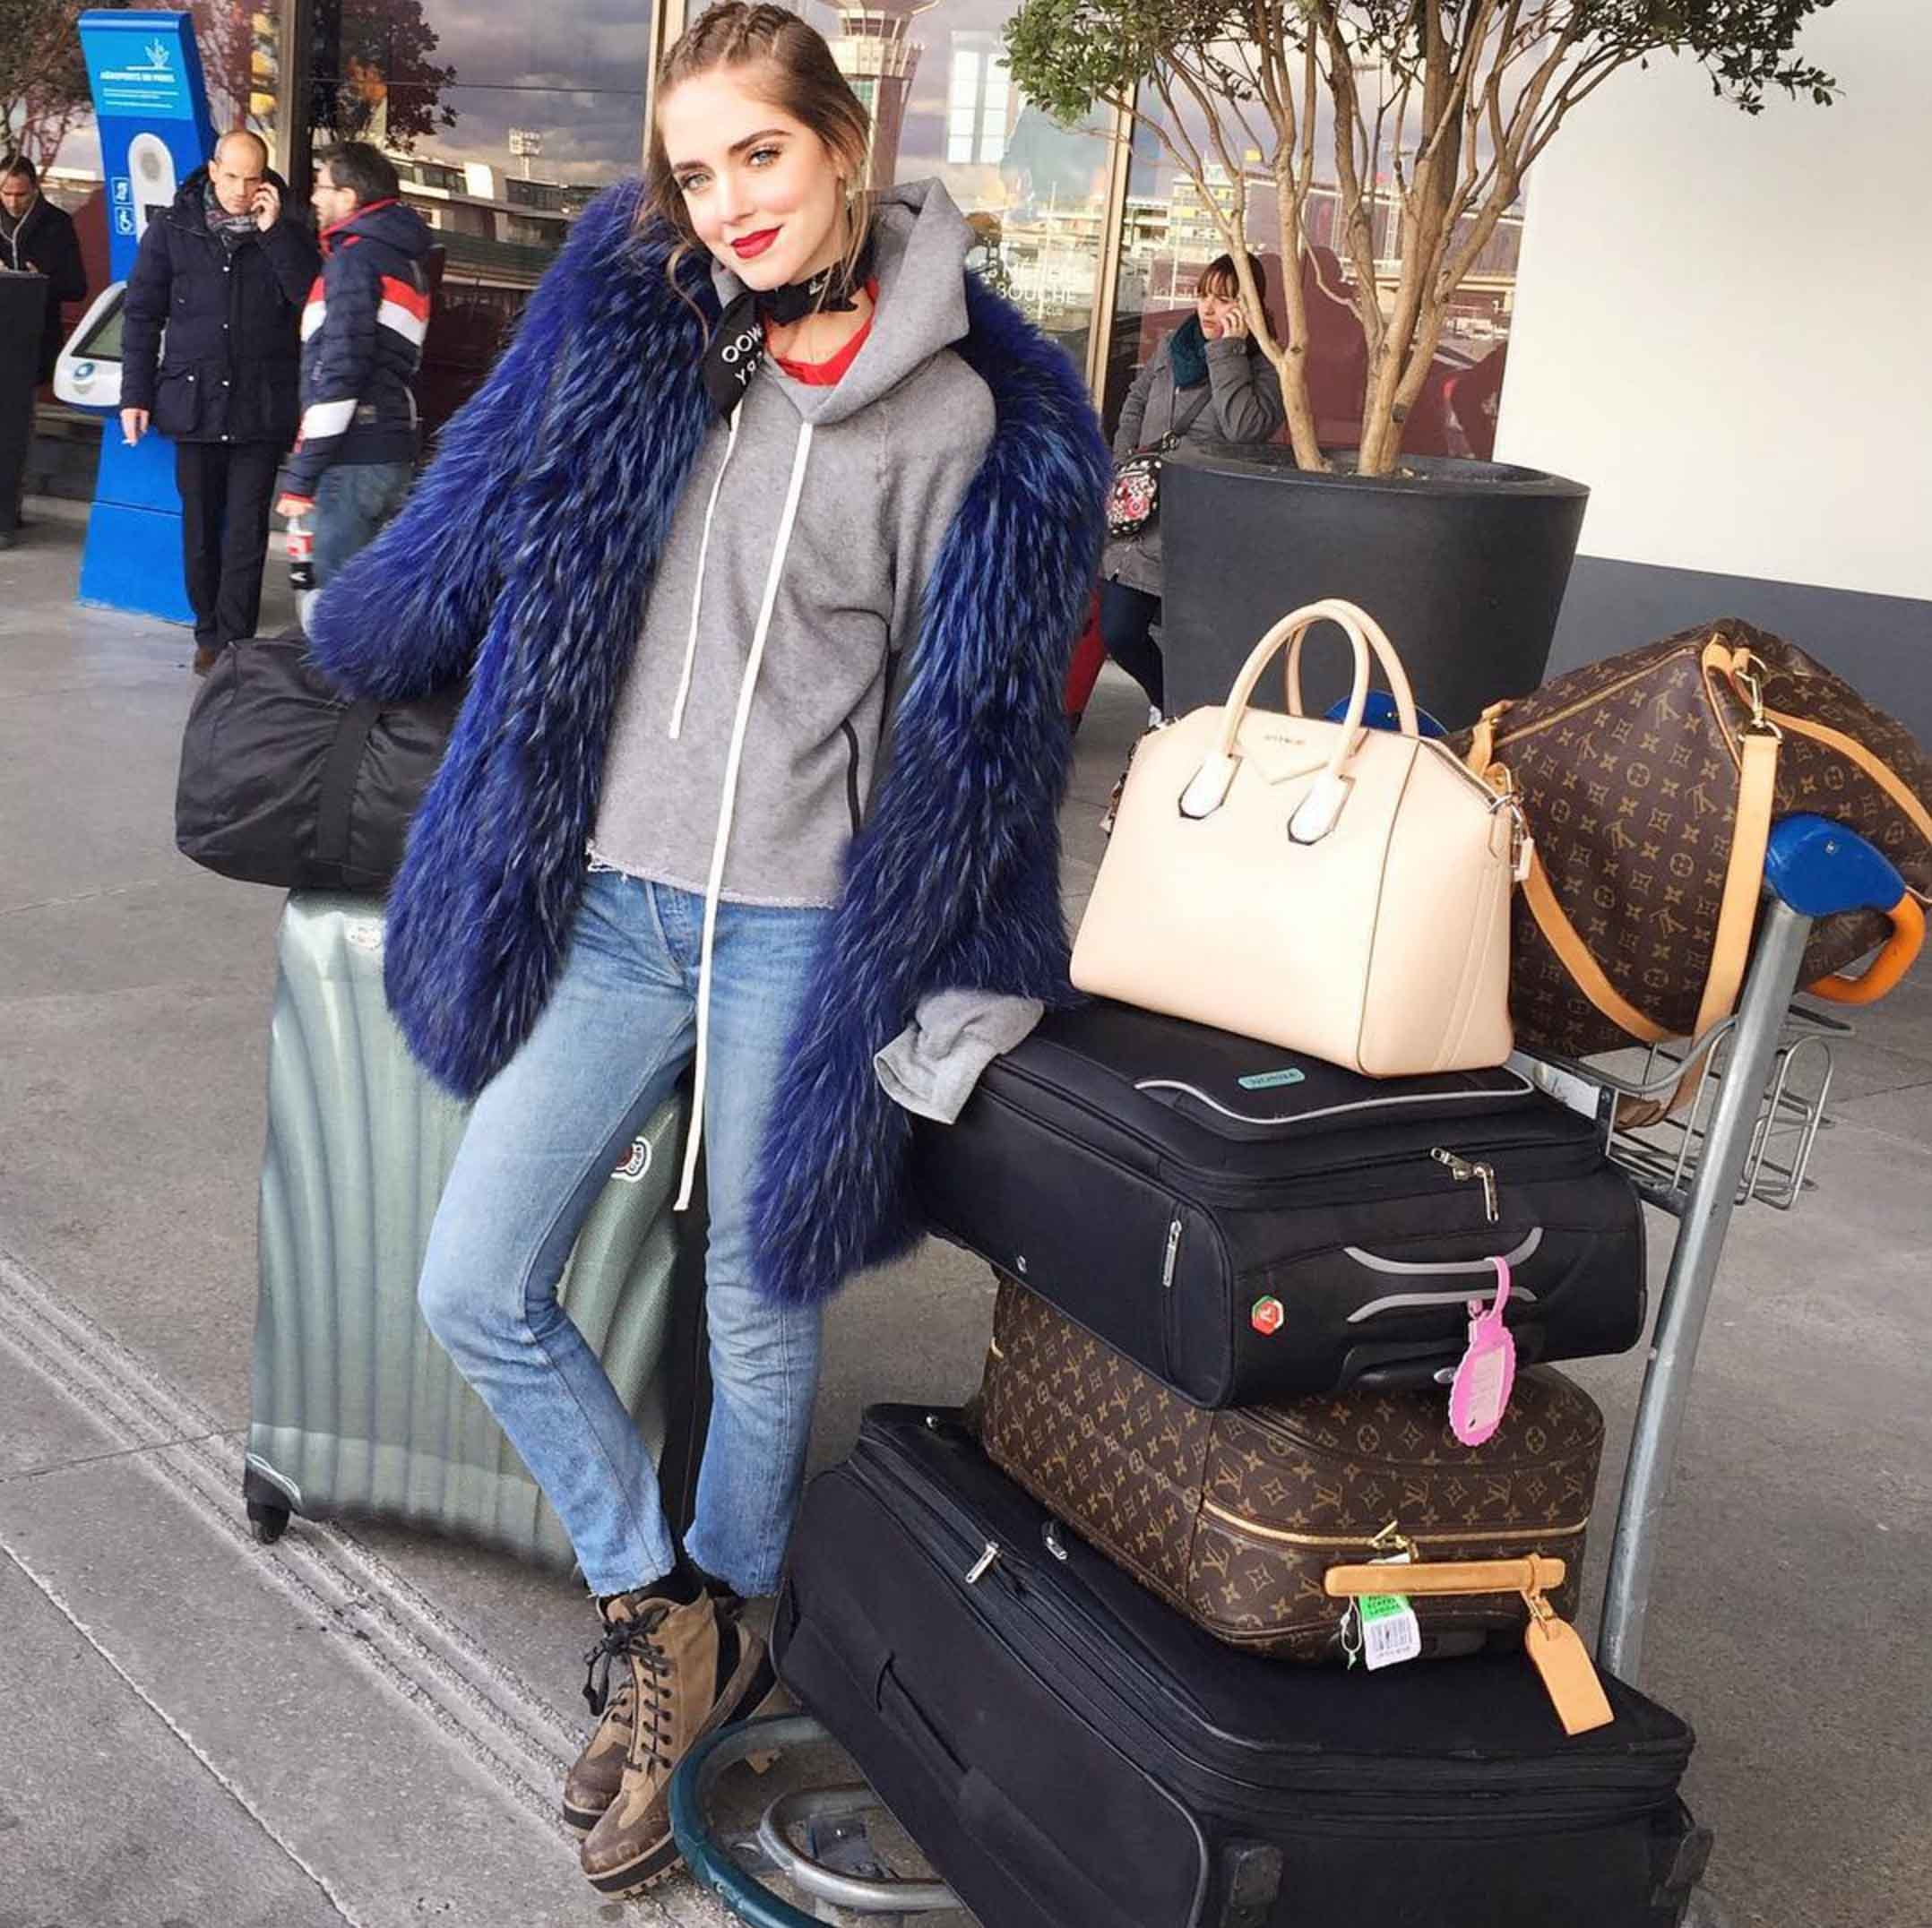 A lady can never have too much luggage